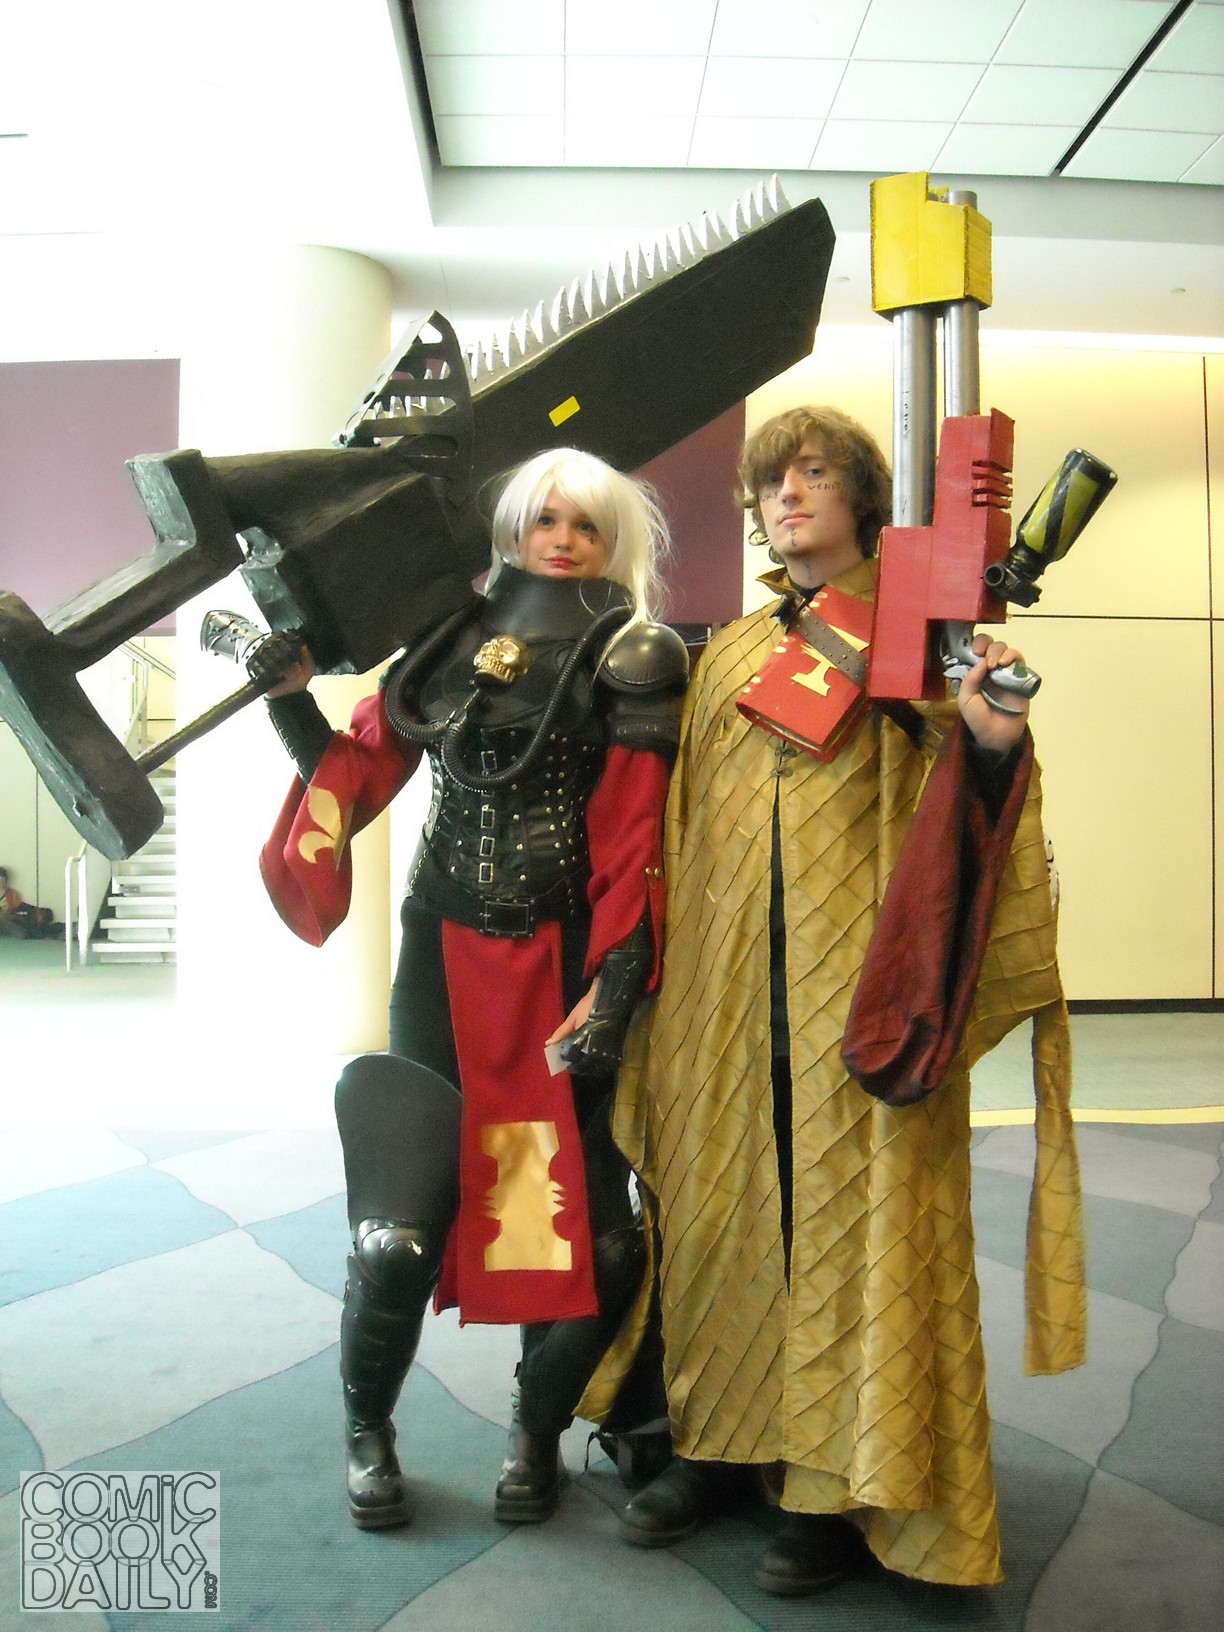 Cosplaying with Weapons